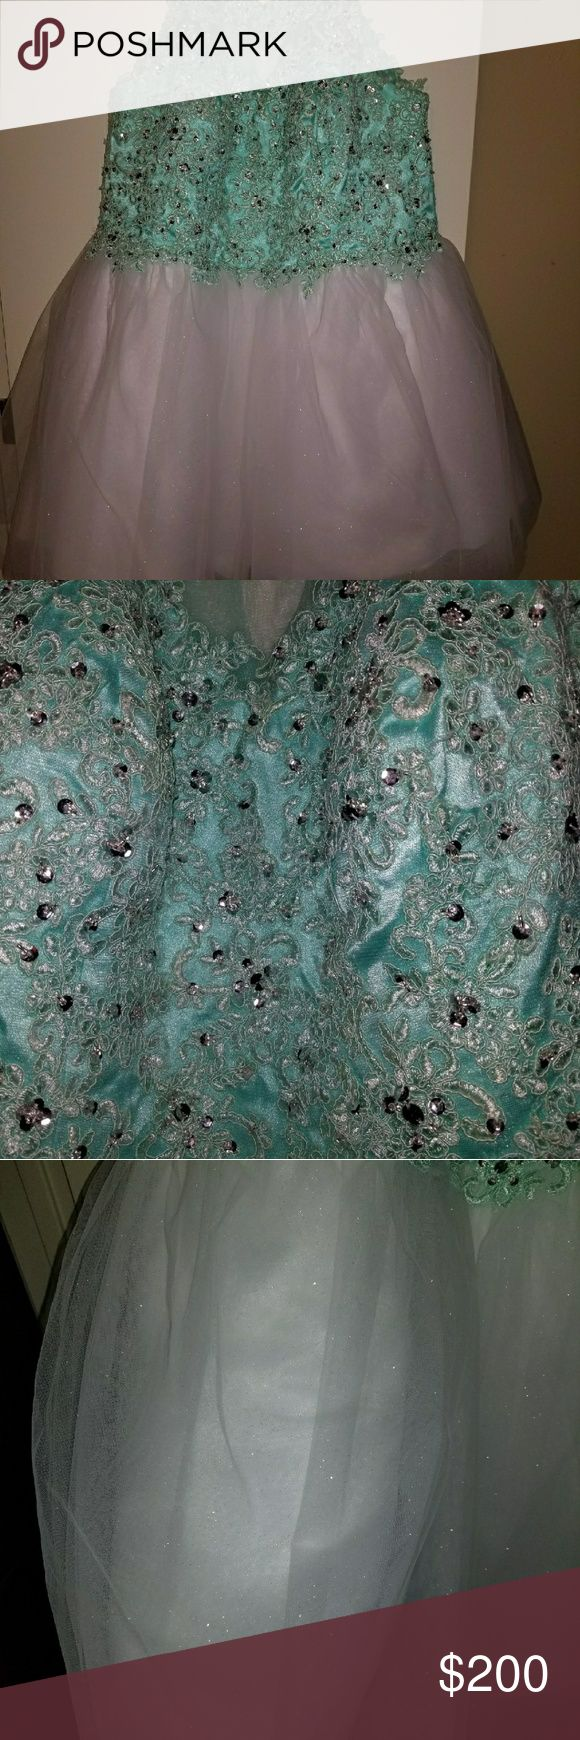 Plus size prom/quince dress Tiffany blue and white, high neck, lacy detailing with sequins. Hand made and worn once! Dresses Prom